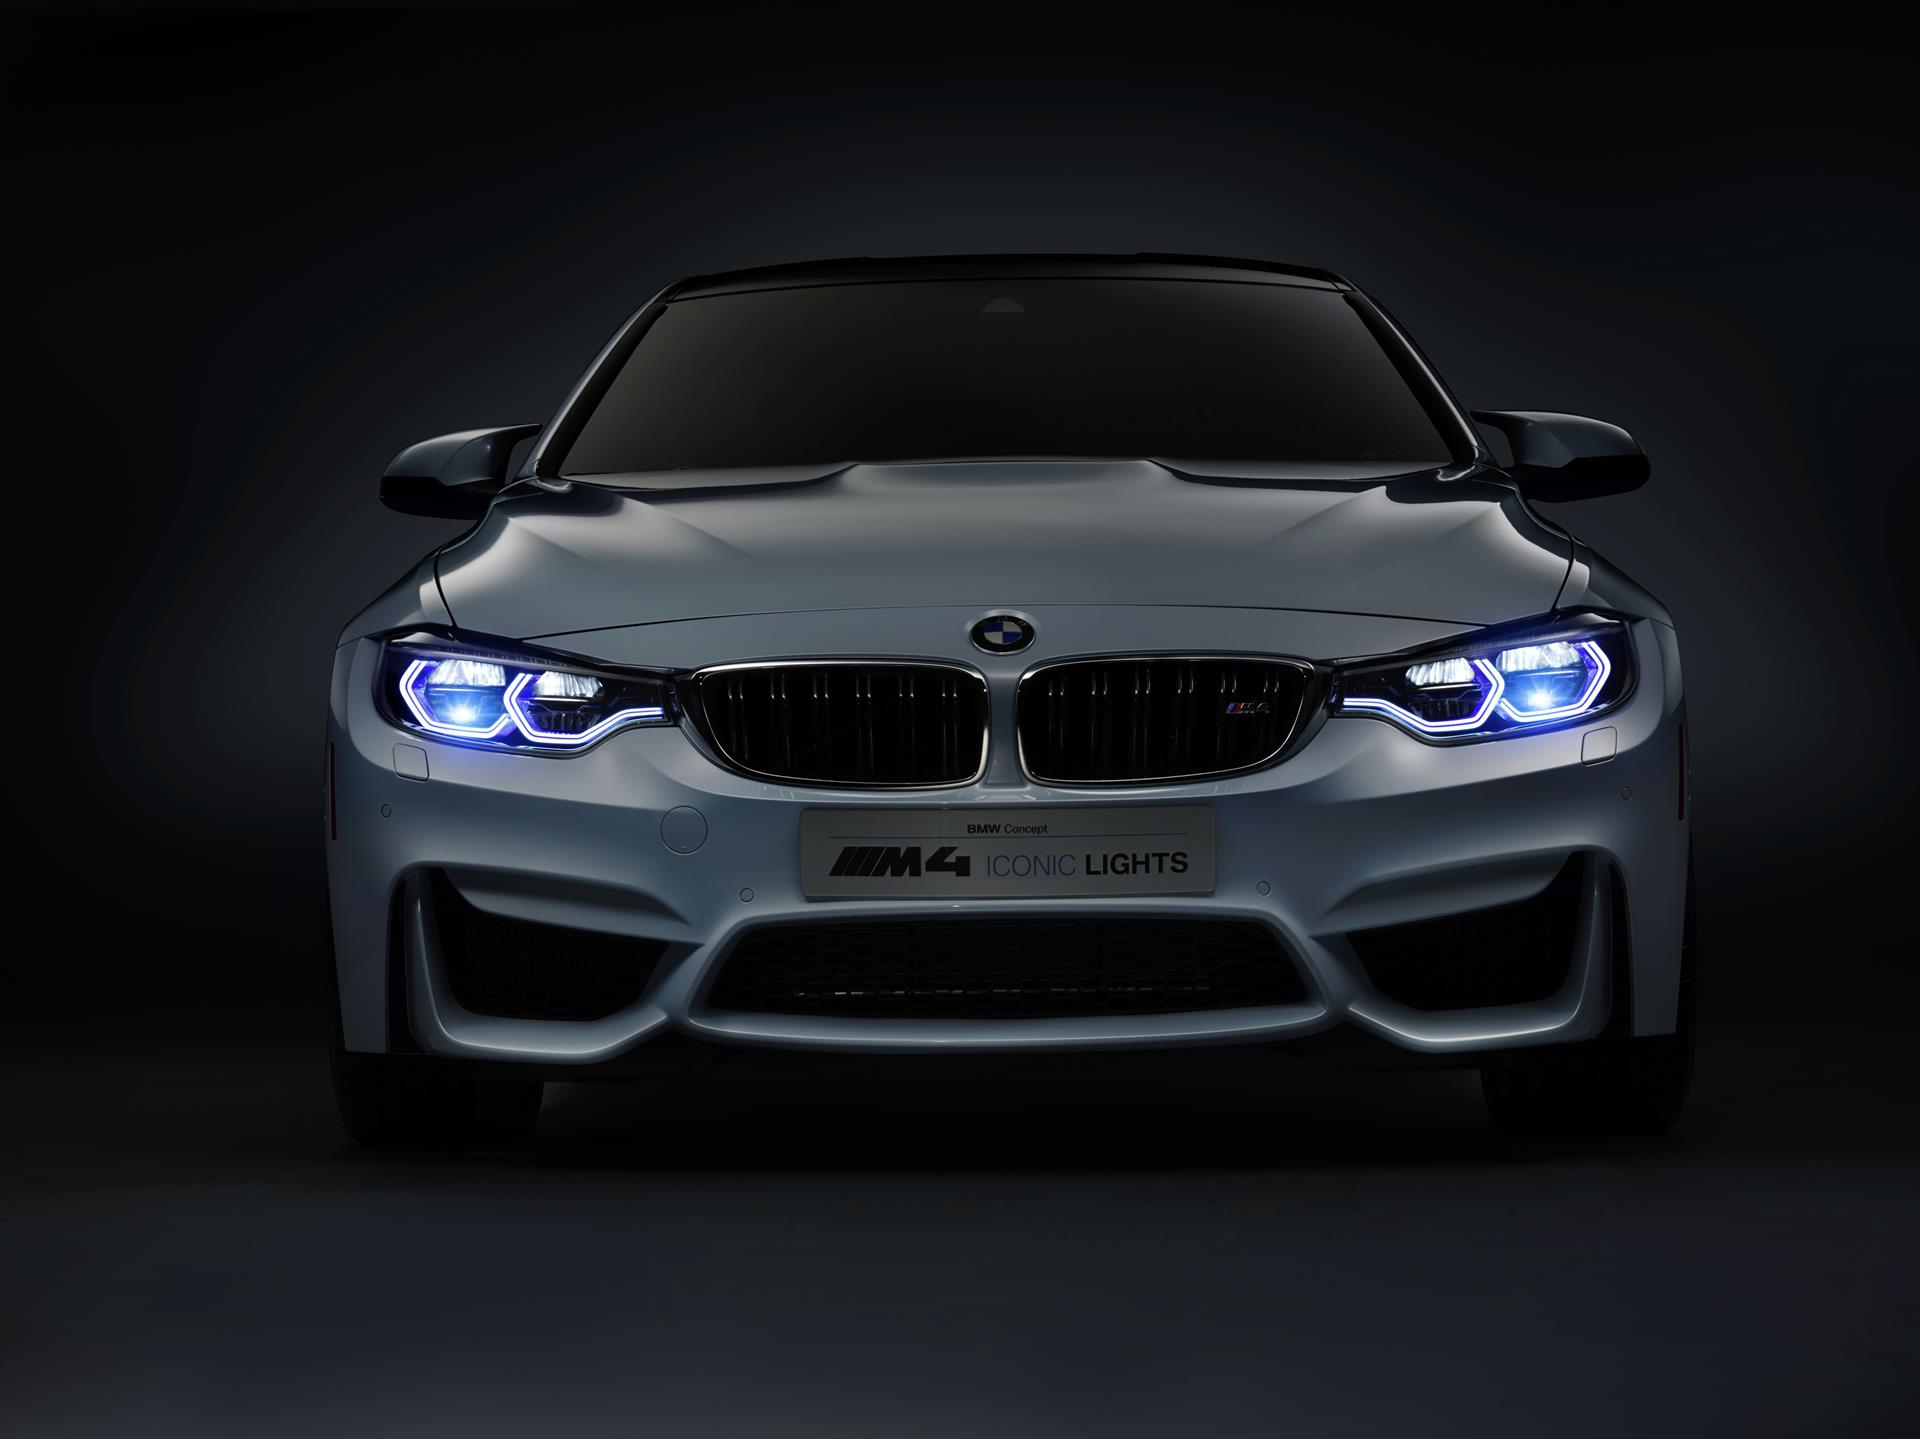 2015 Bmw M4 Concept Iconic Lights Pictures News Research